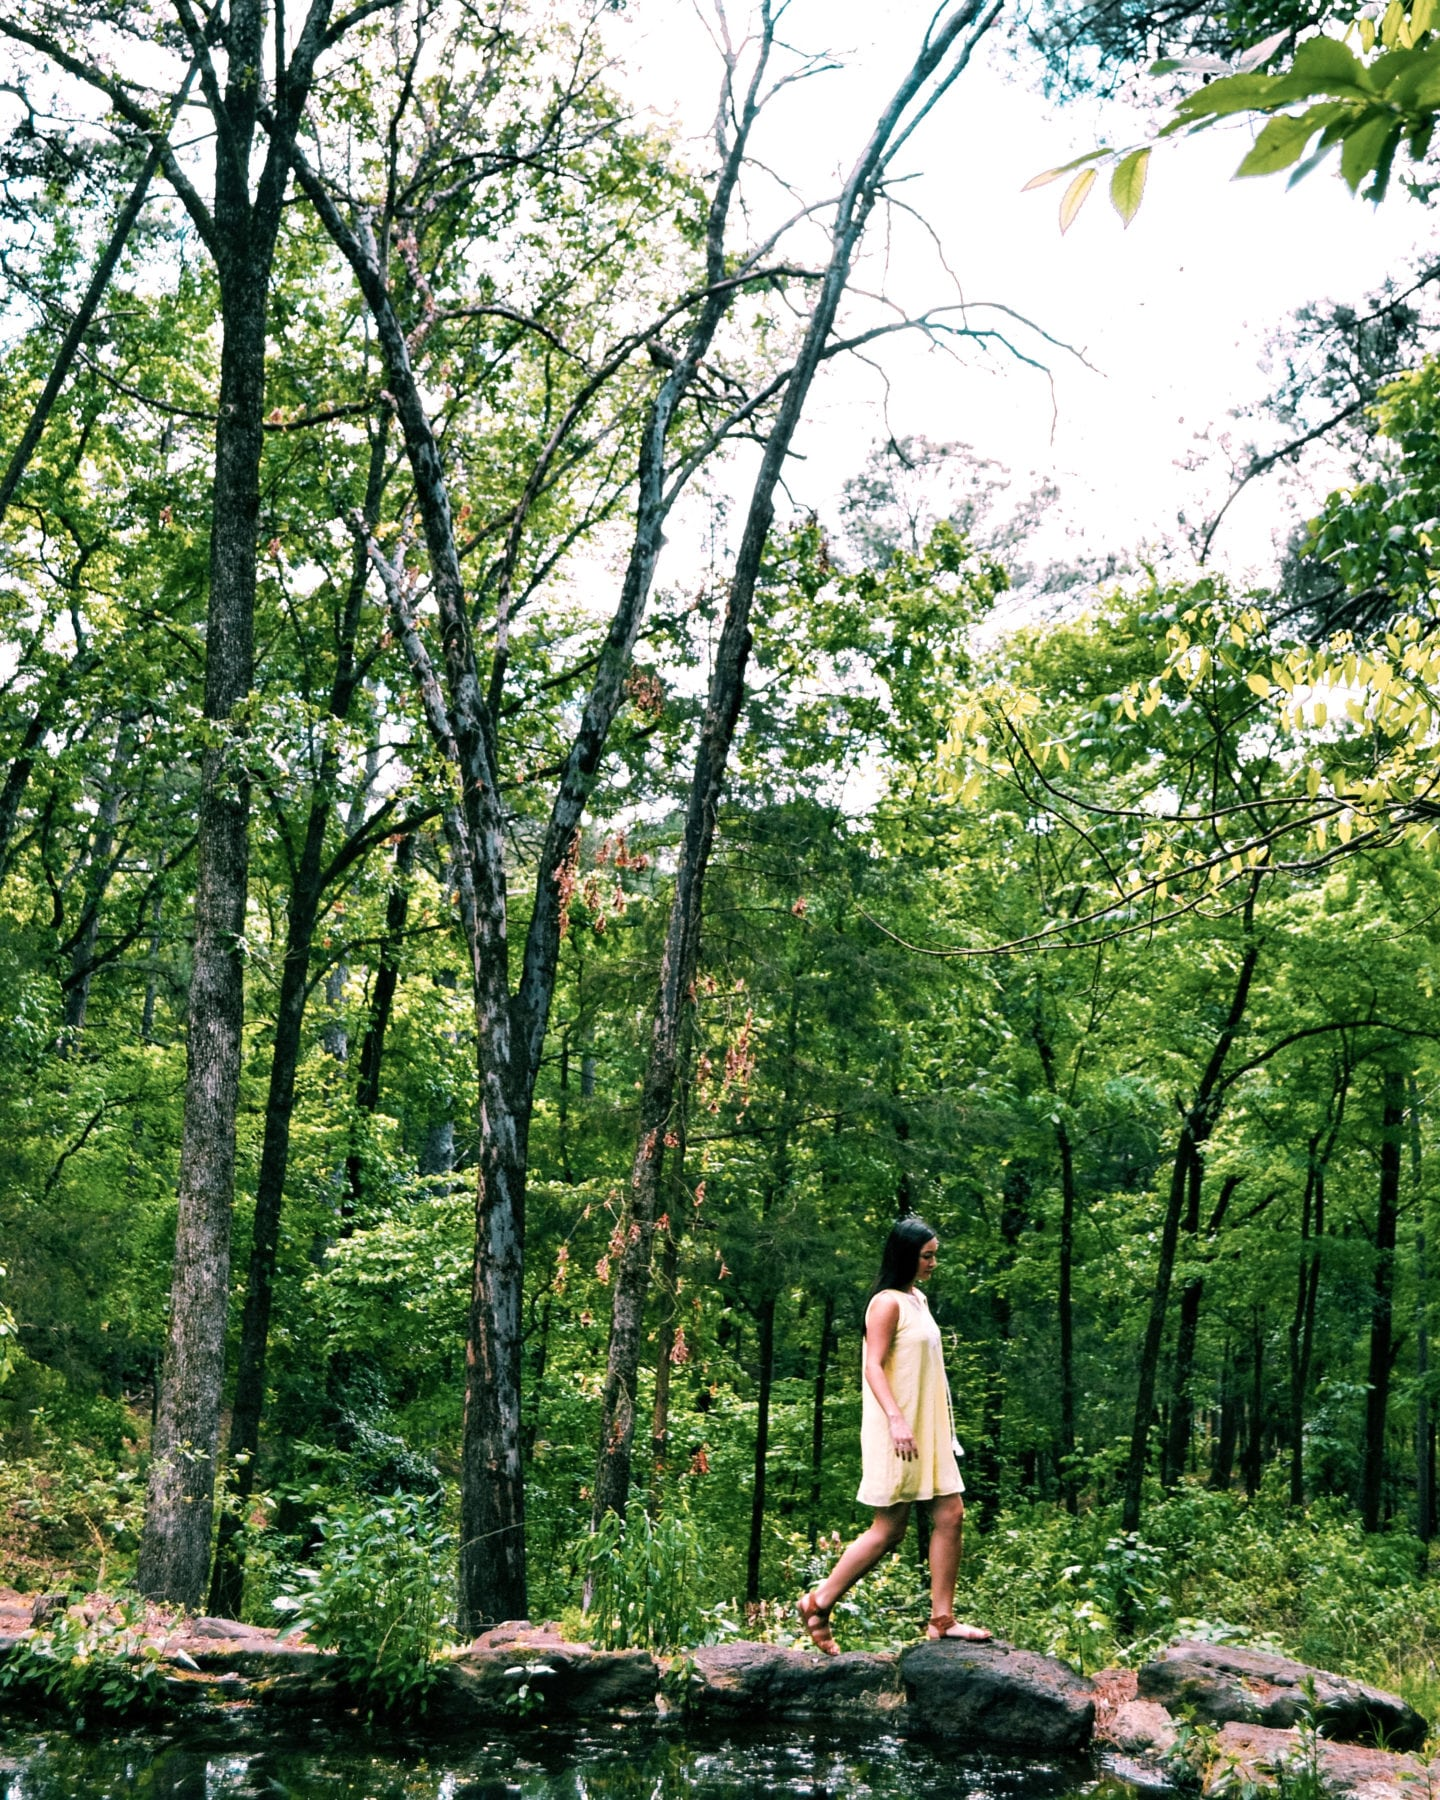 12 THINGS YOU'LL FIND IN TYLER STATE PARK